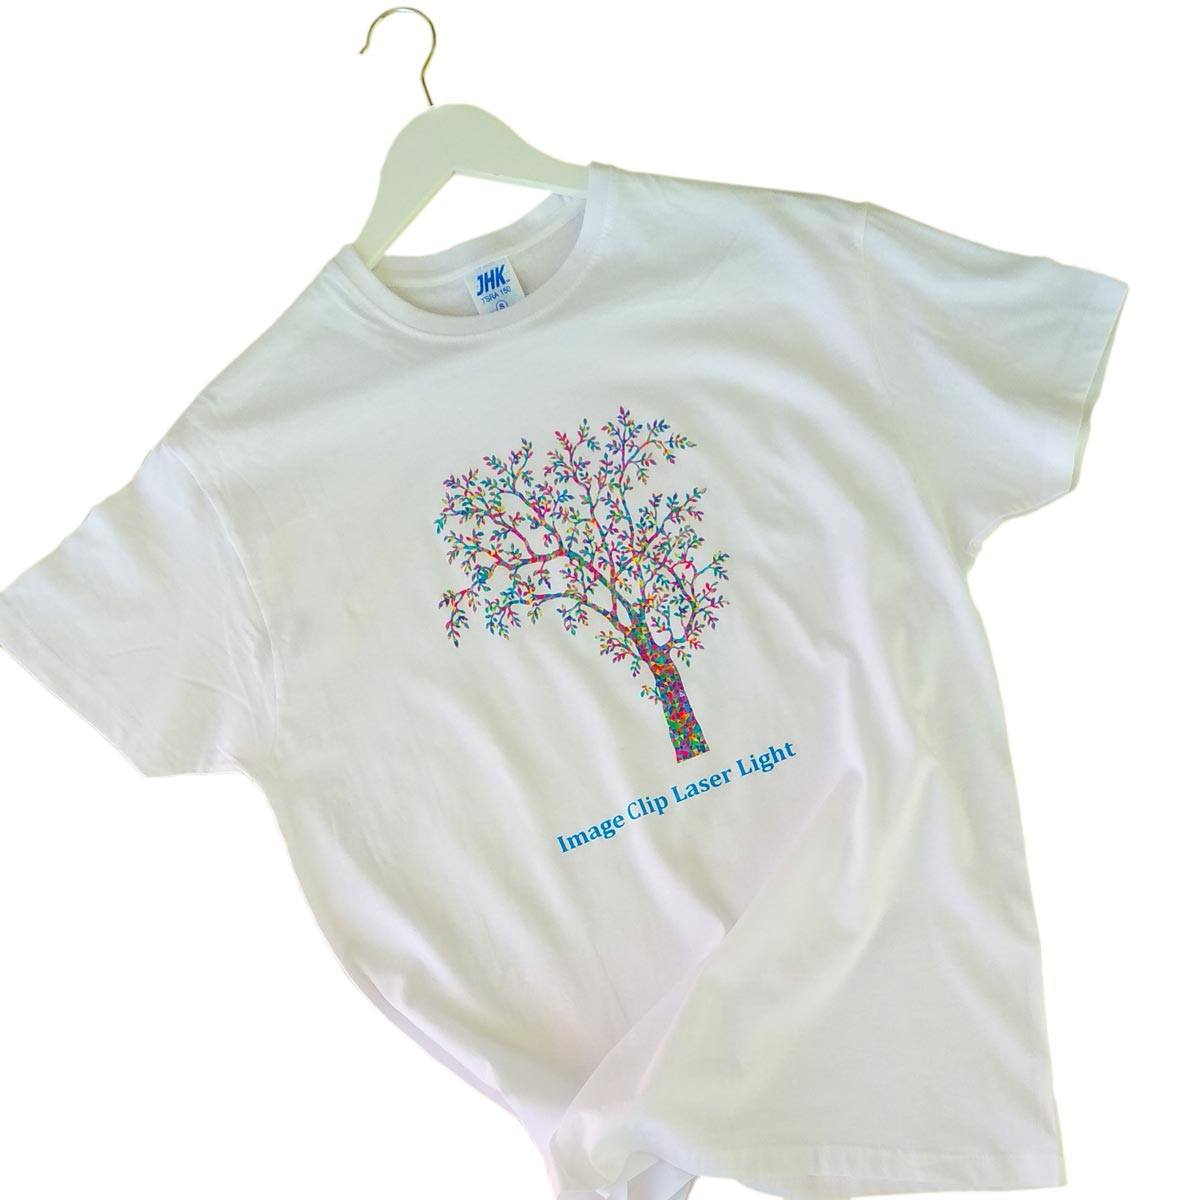 Image Clip Laser Light without background - Transfer paper for light textiles for laser printers